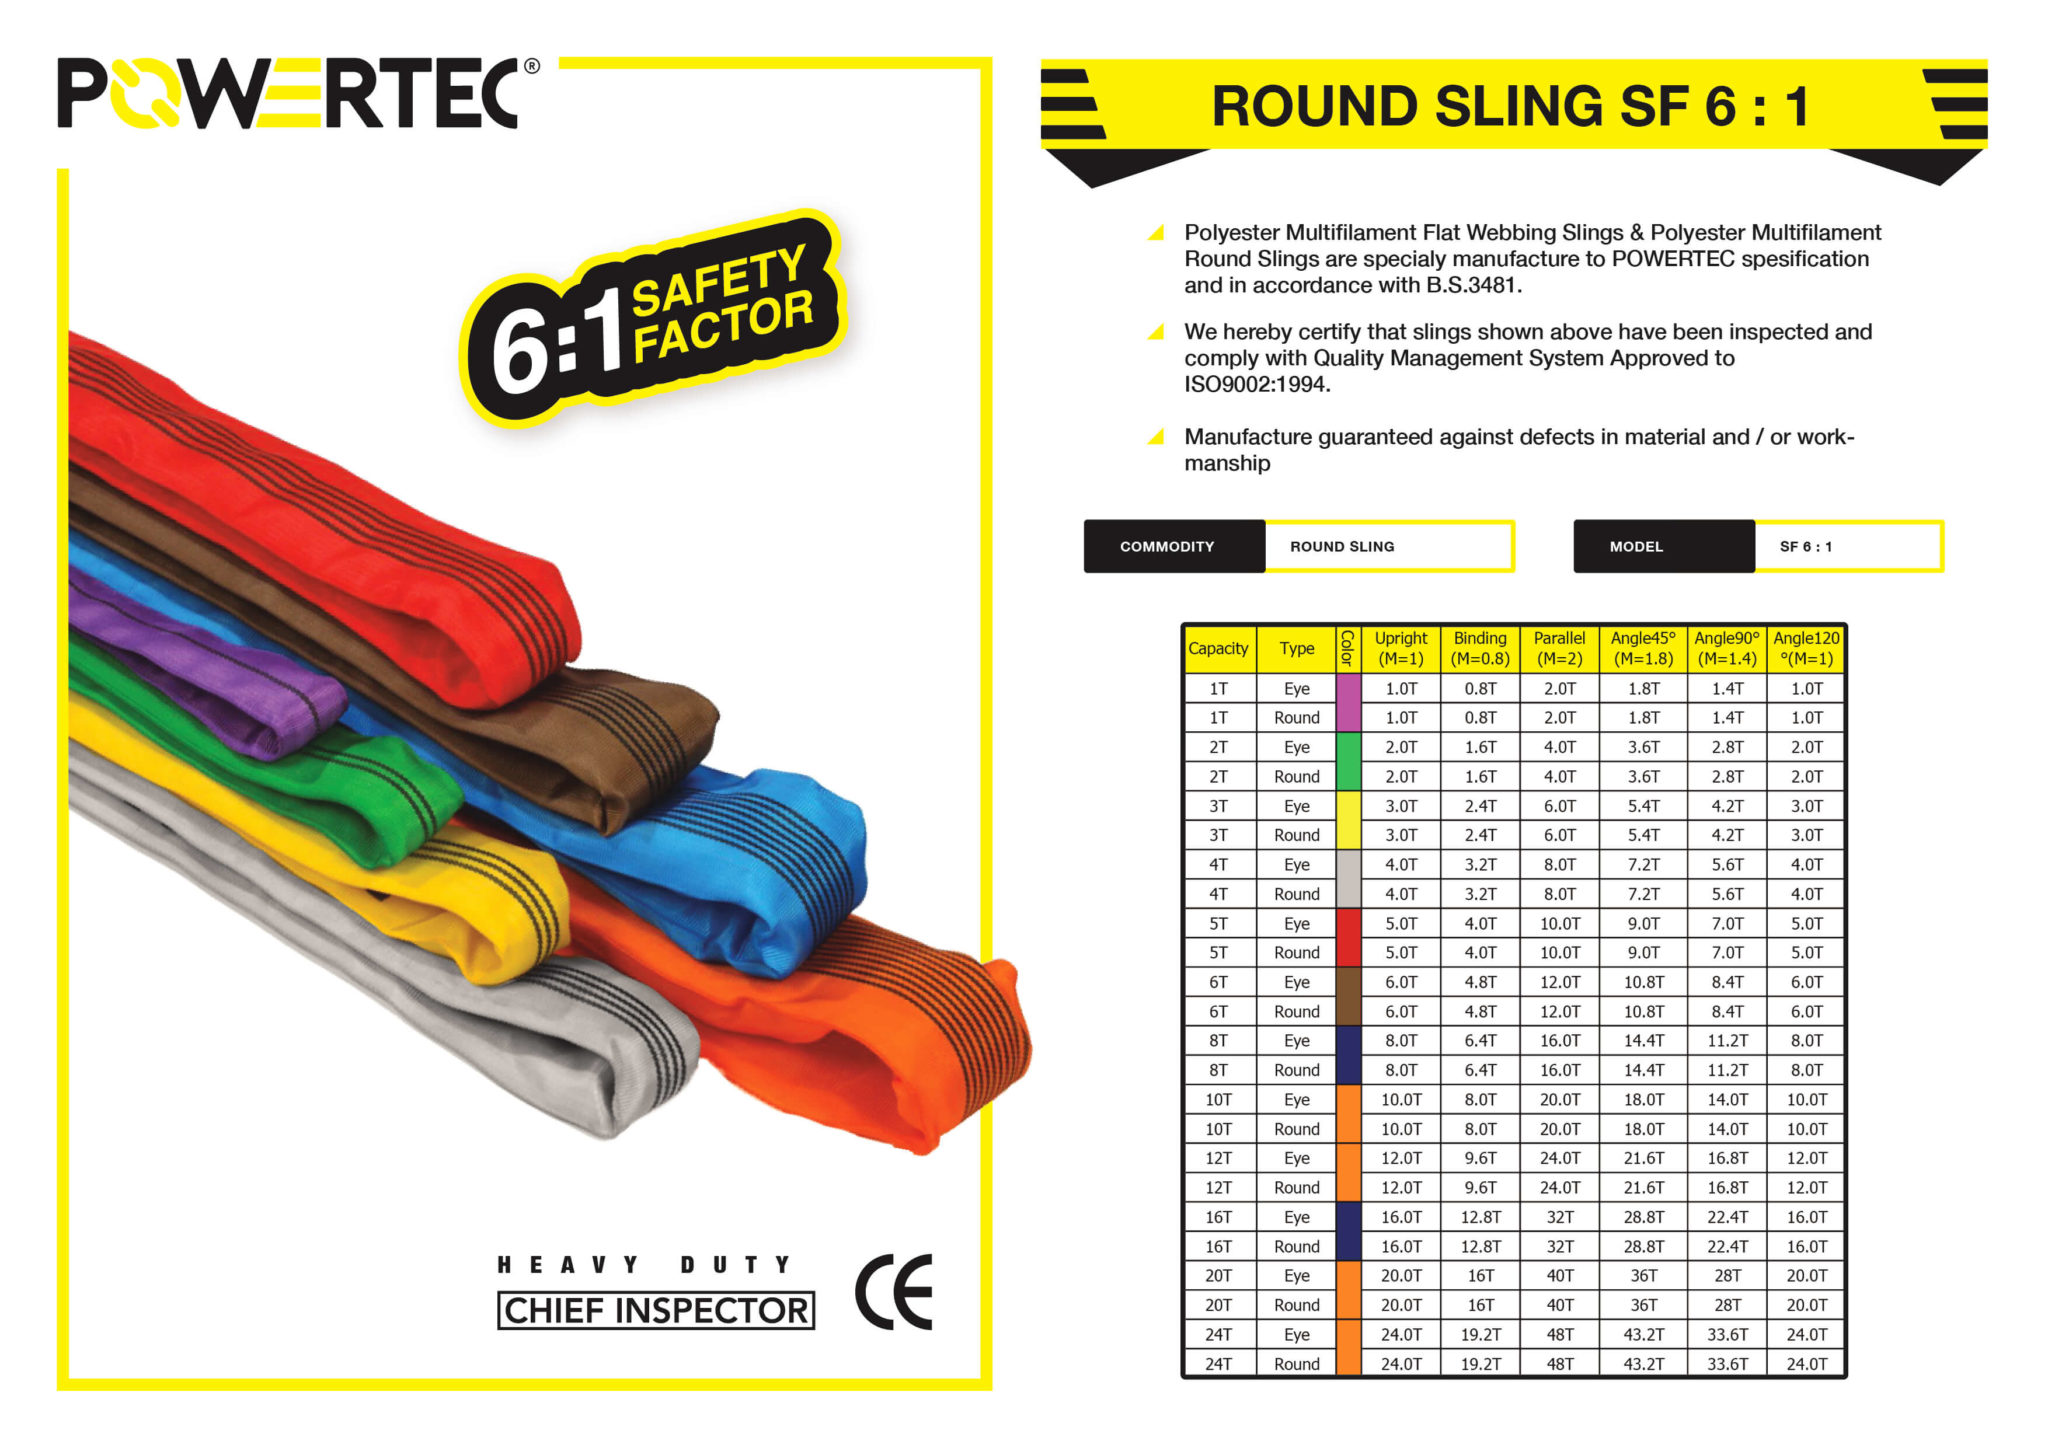 POWERTEC ROUND SLING SAFETY FACTOR 6:1 BROCHURE